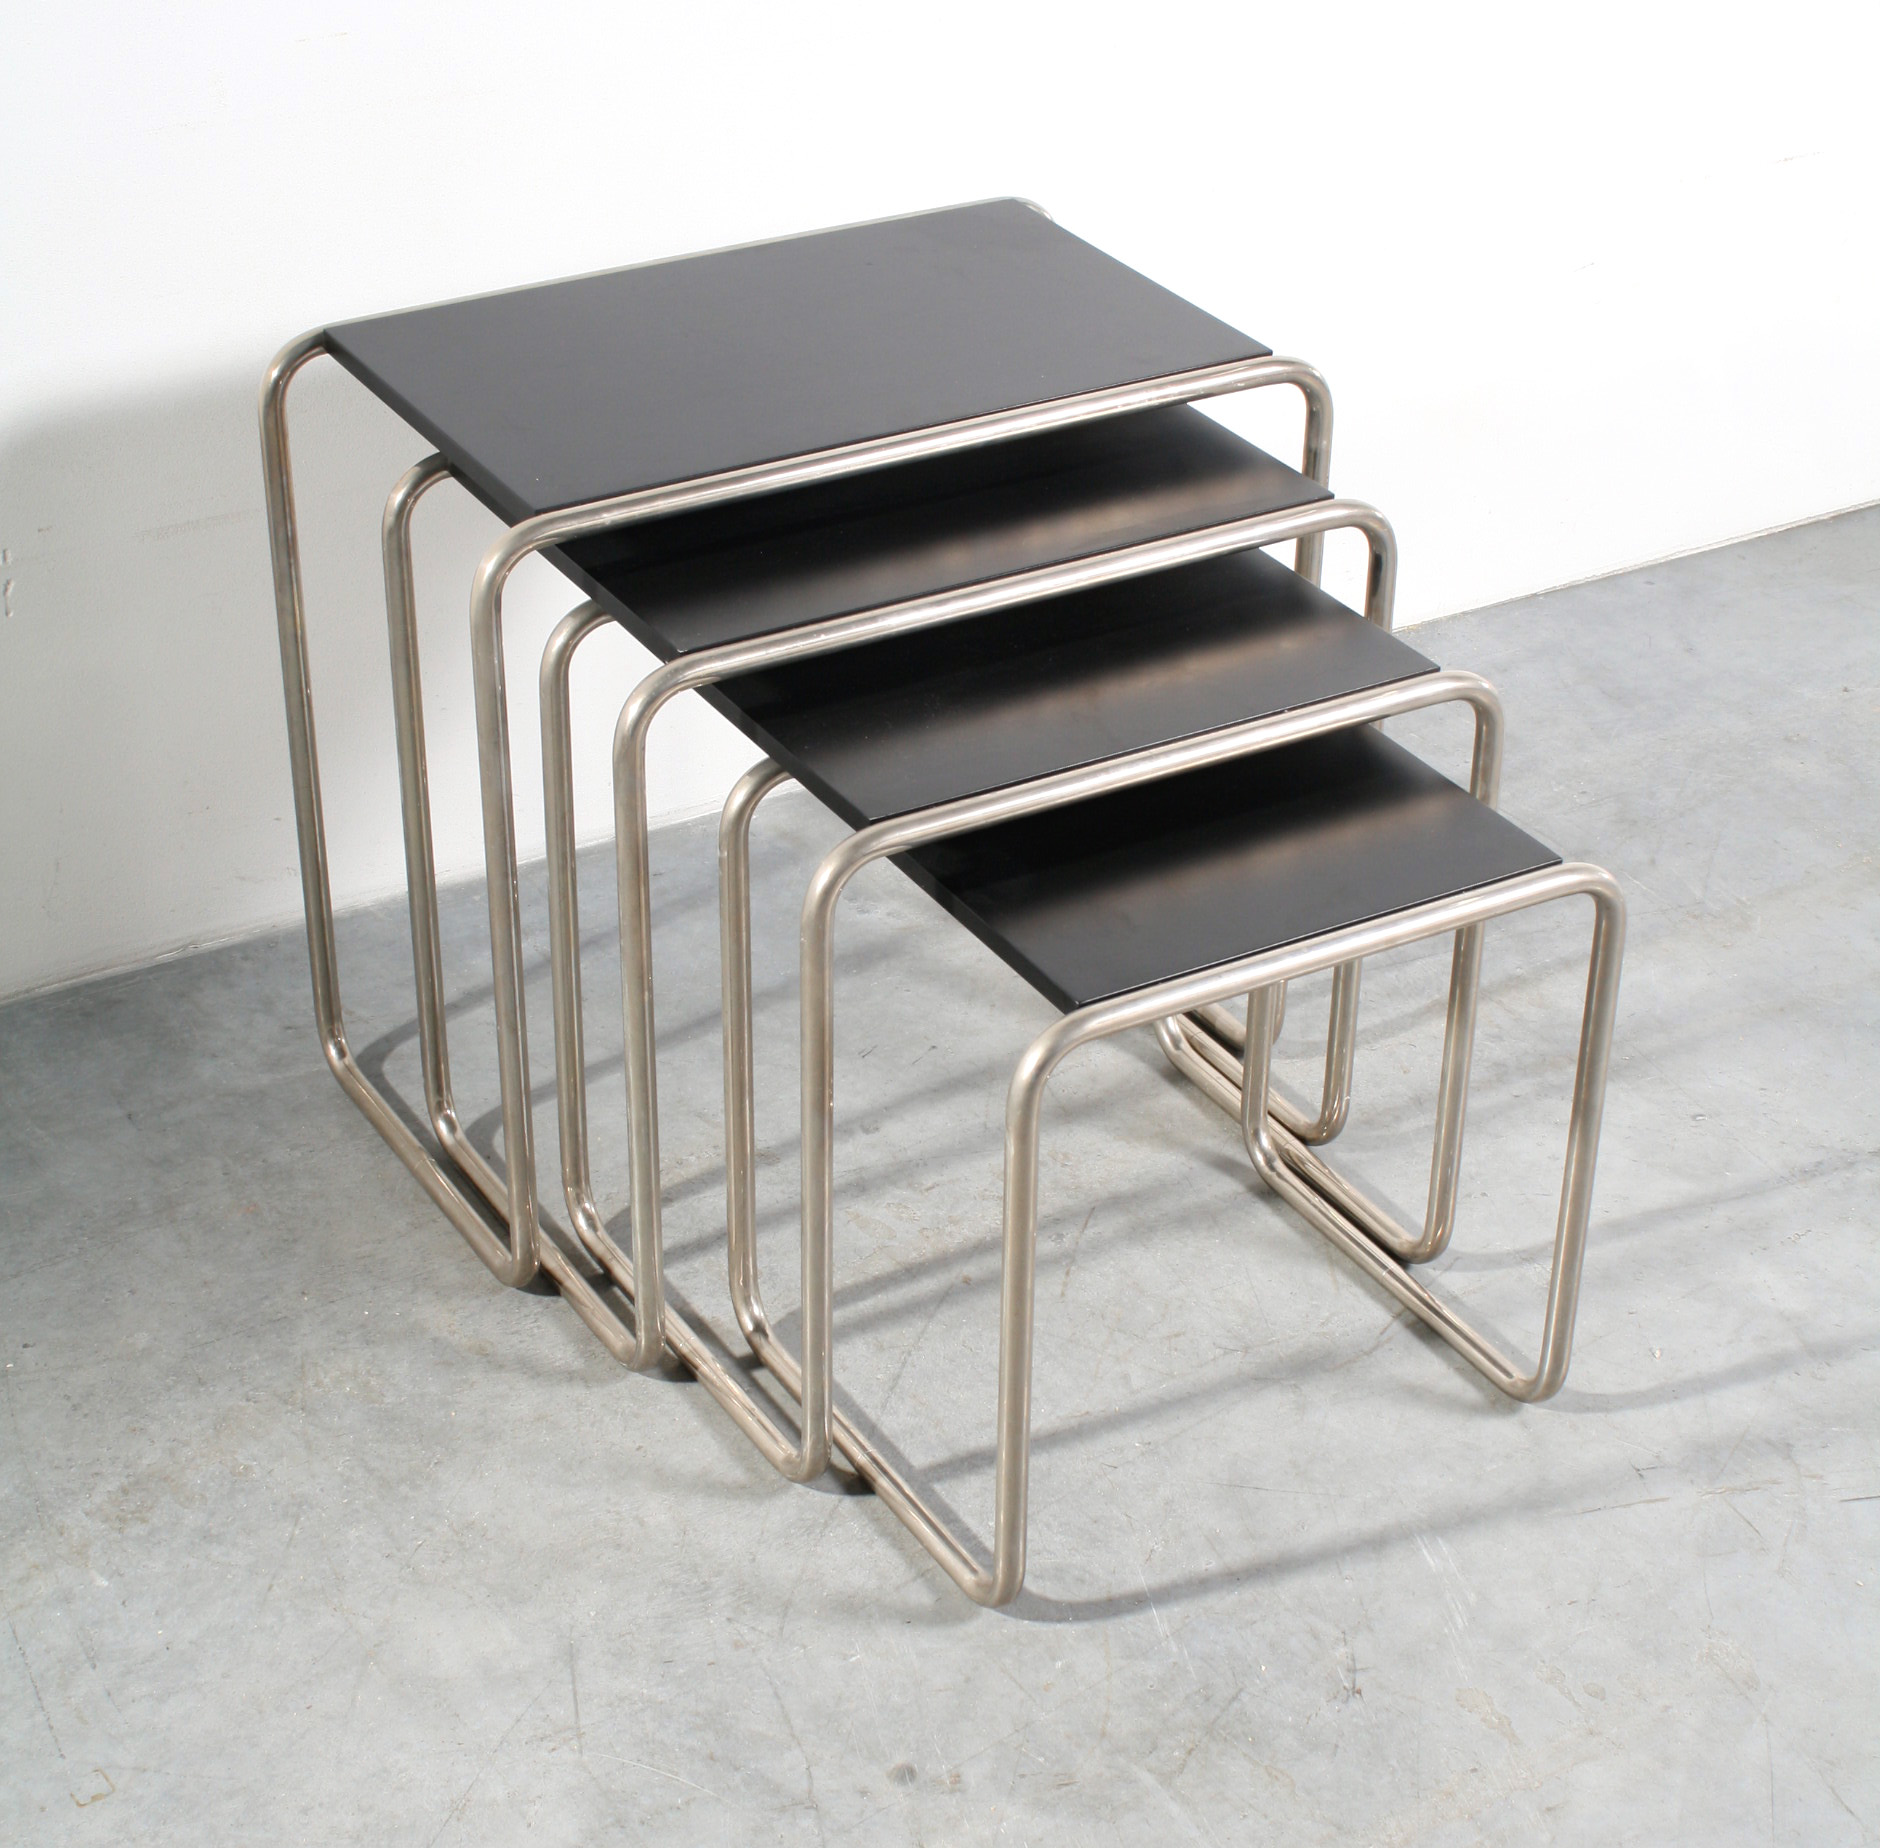 Thonet B9 salontafel table Bauhaus design Marcel Breuer